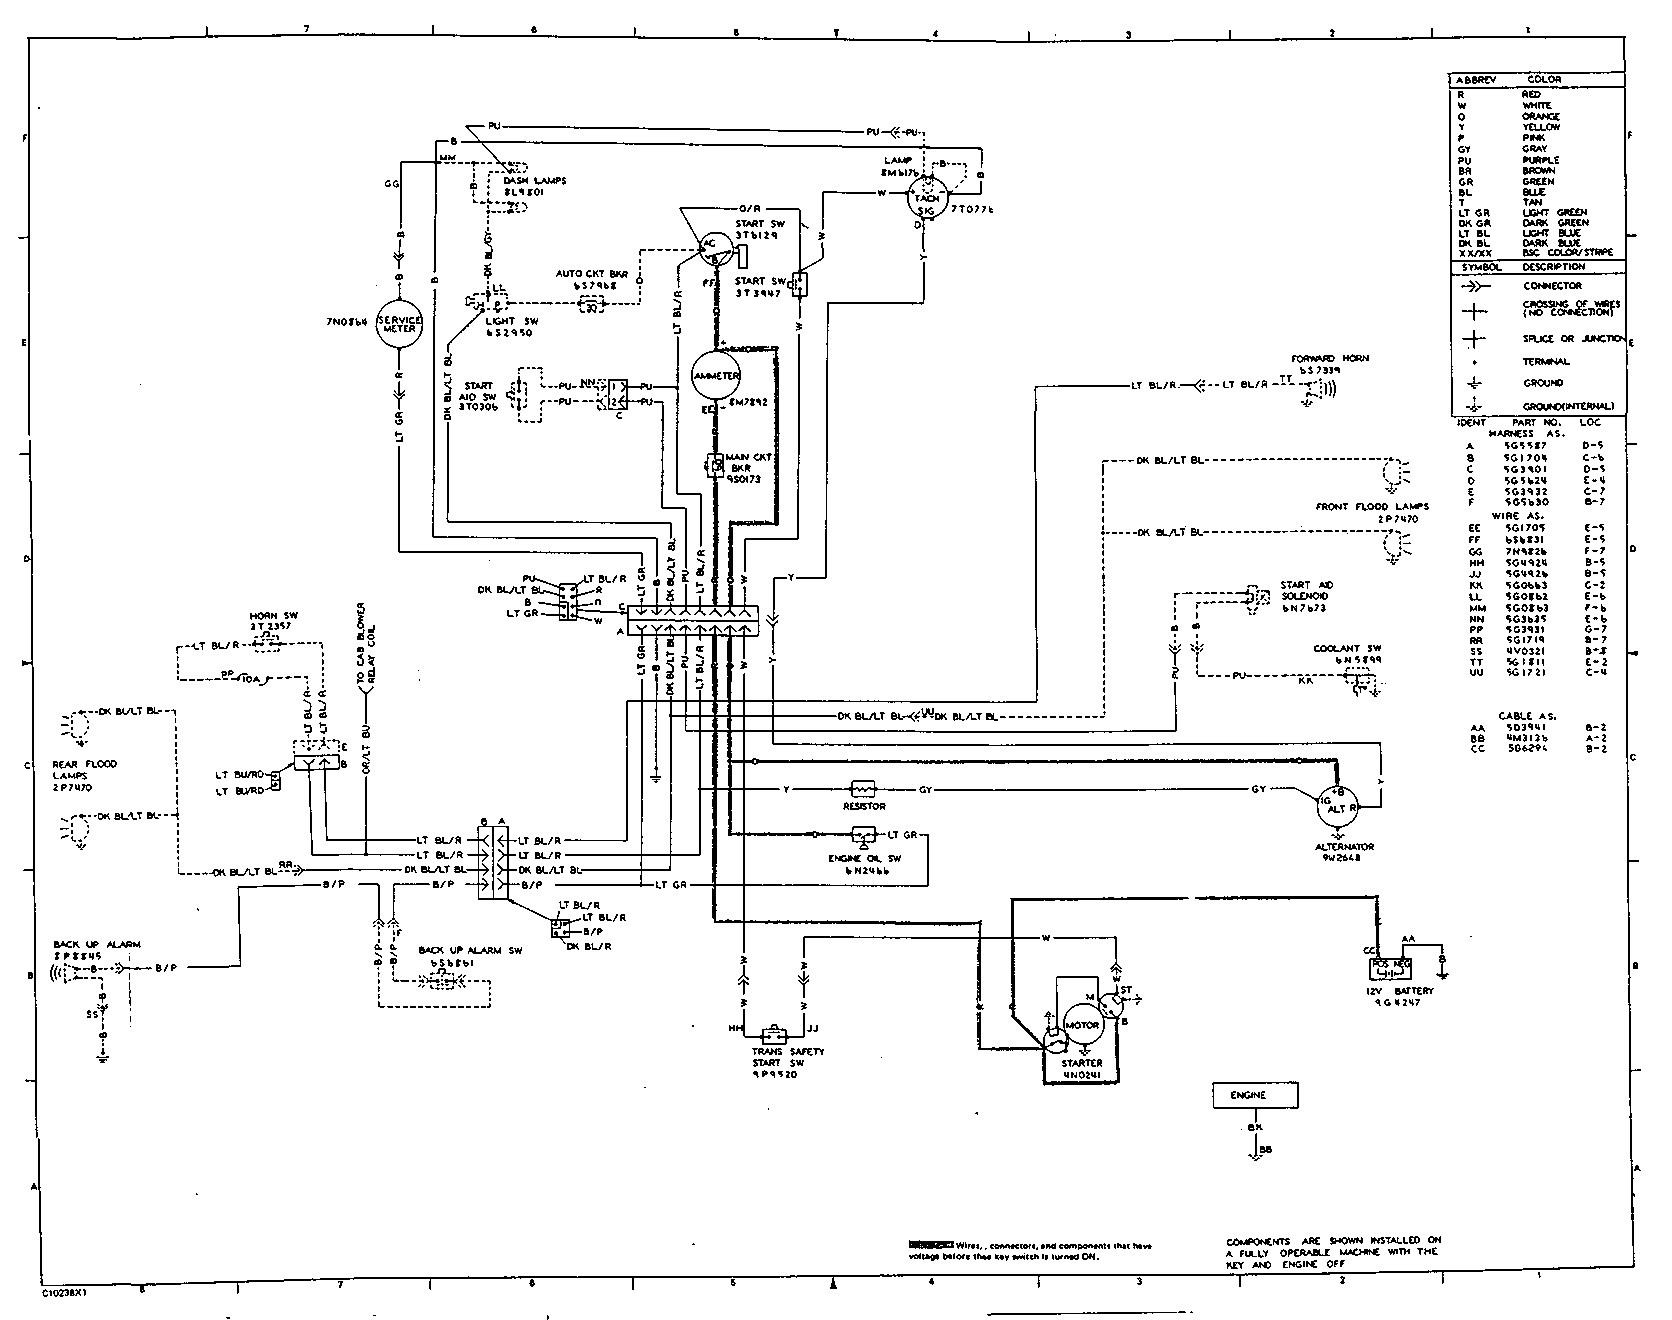 Pet Motion Detector Wiring Diagram 476 - Today Wiring Diagram - Motion Sensor Wiring Diagram